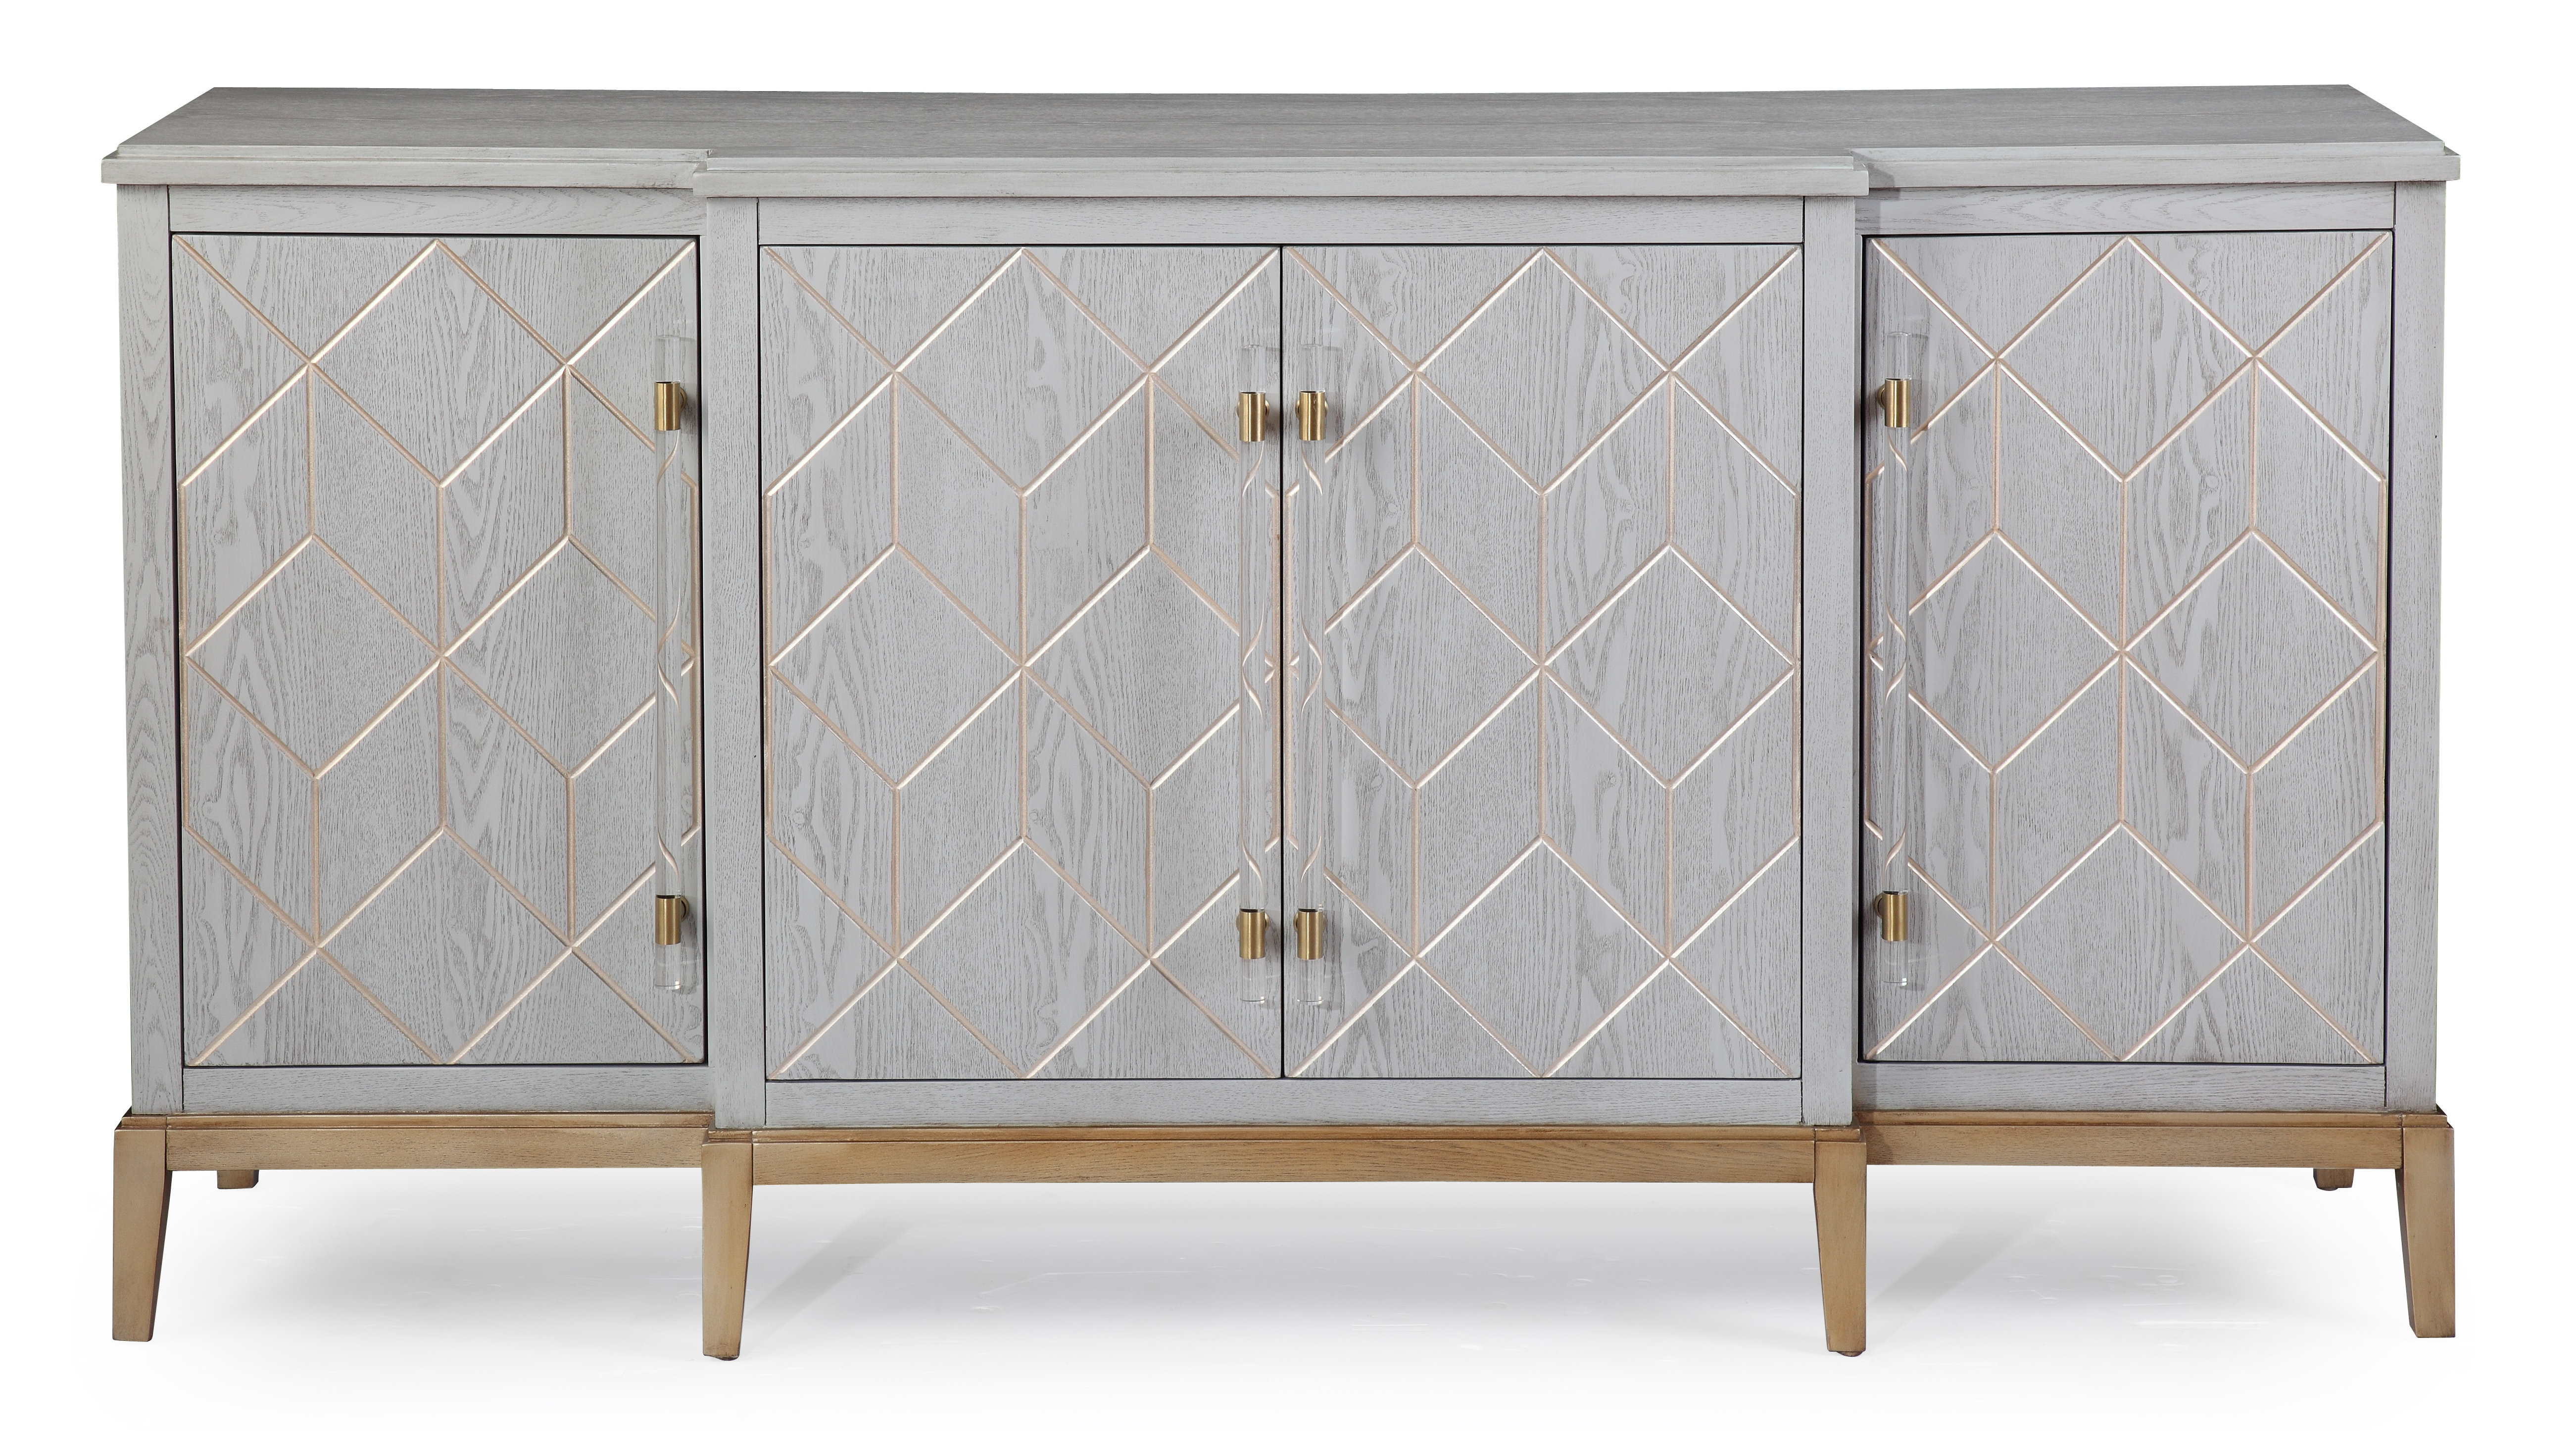 Farmhouse & Rustic Sideboards & Buffets | Birch Lane With Regard To Contemporary Three Tier Glass Buffets With Black Metal Frame (View 5 of 30)